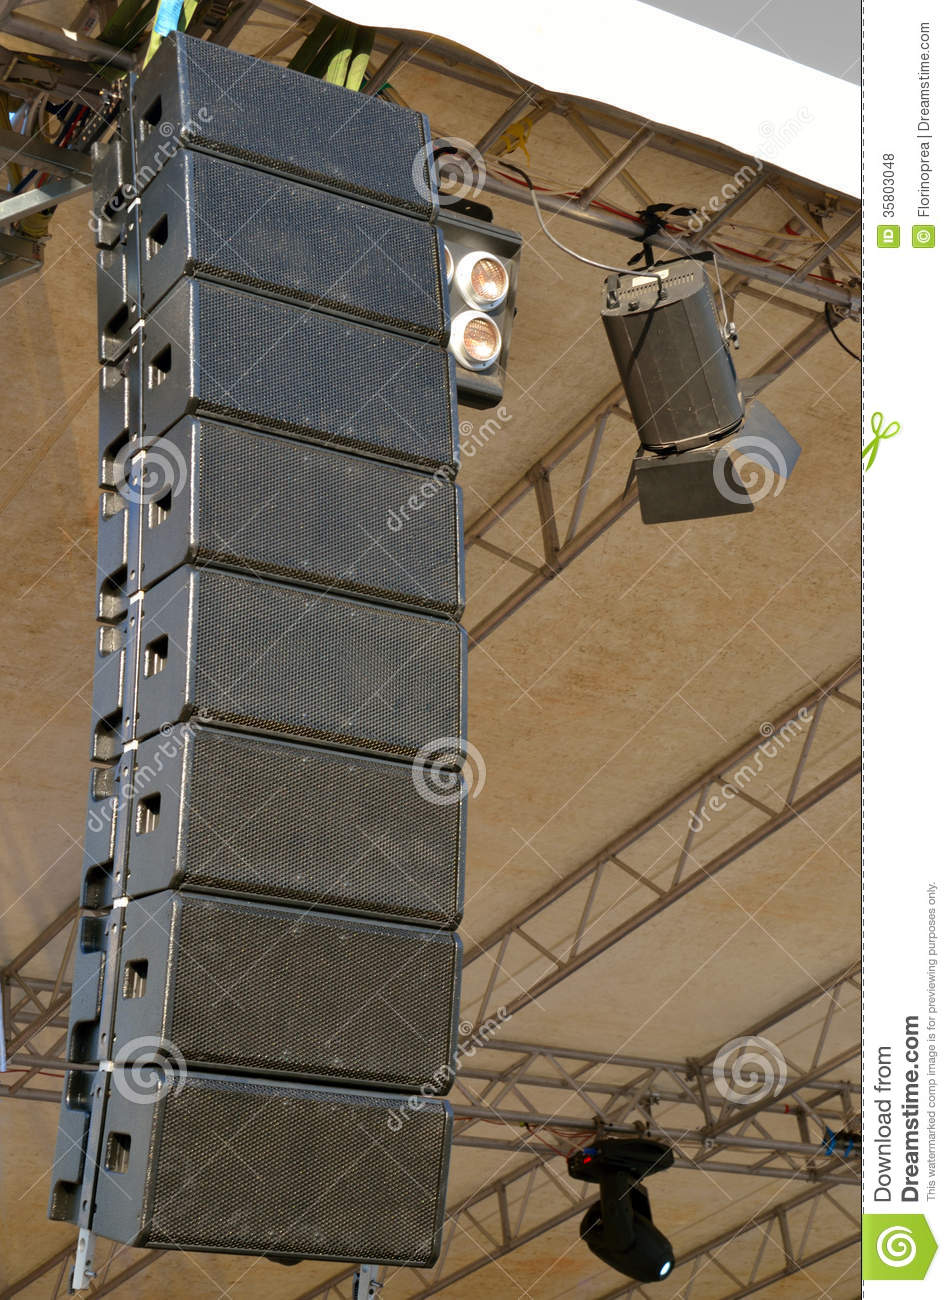 Speakers At Outdoors Concert Royalty Free Stock Photos ...